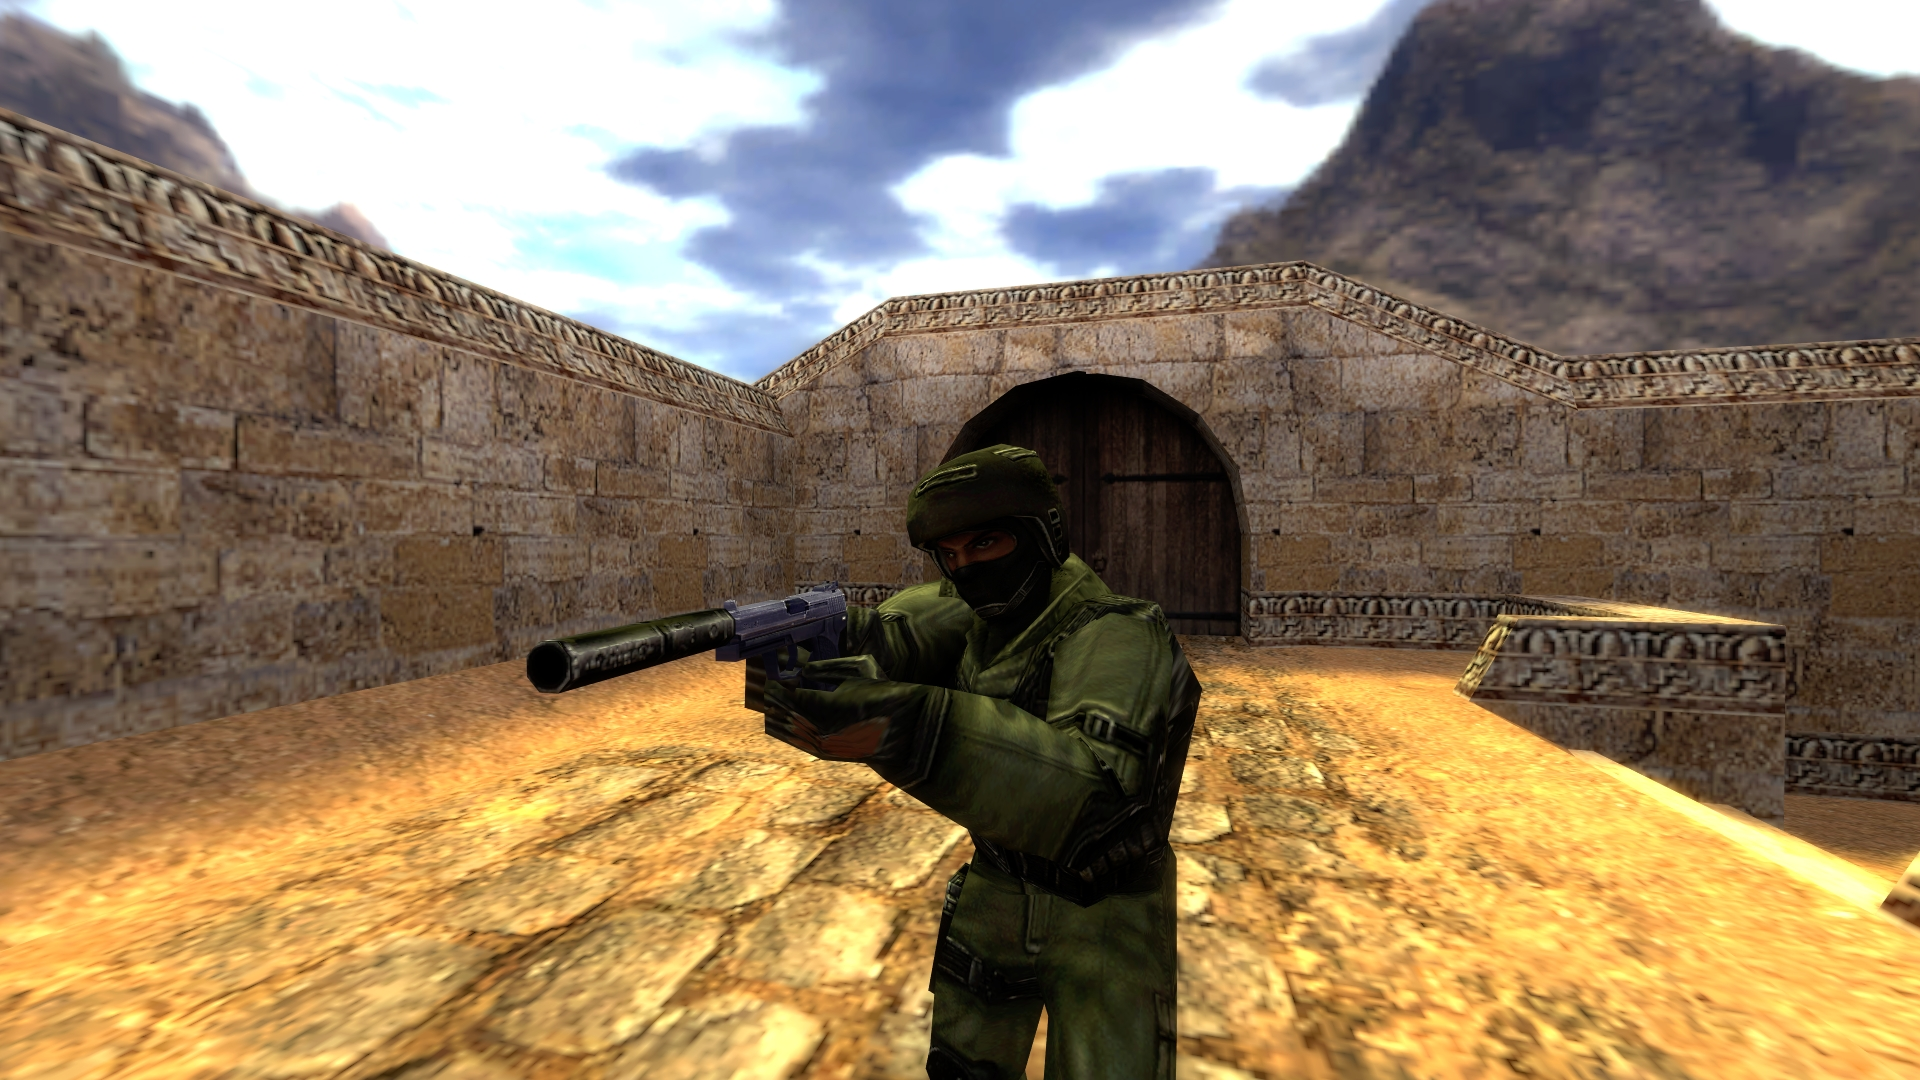 Player Models image - Counter-Strike 1.6 Source mod for Half-Life 2 - Mod DB